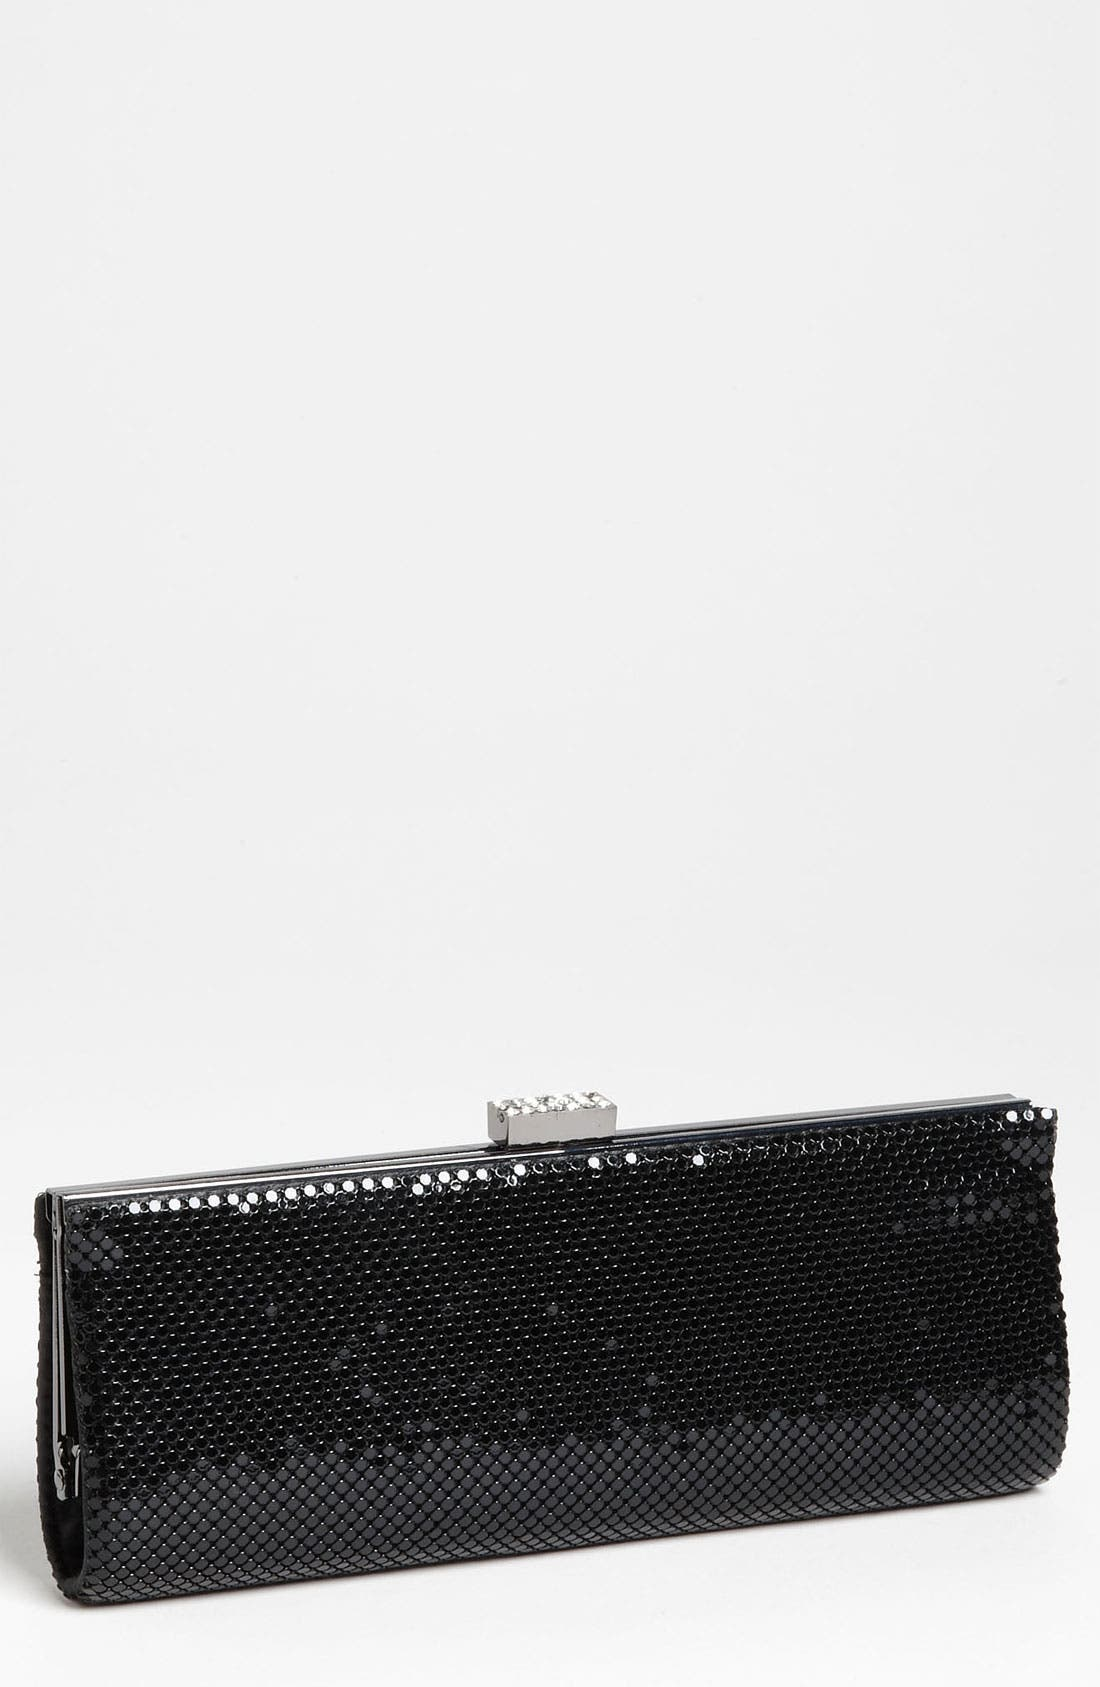 Alternate Image 1 Selected - Jessica McClintock Mesh Framed Clutch